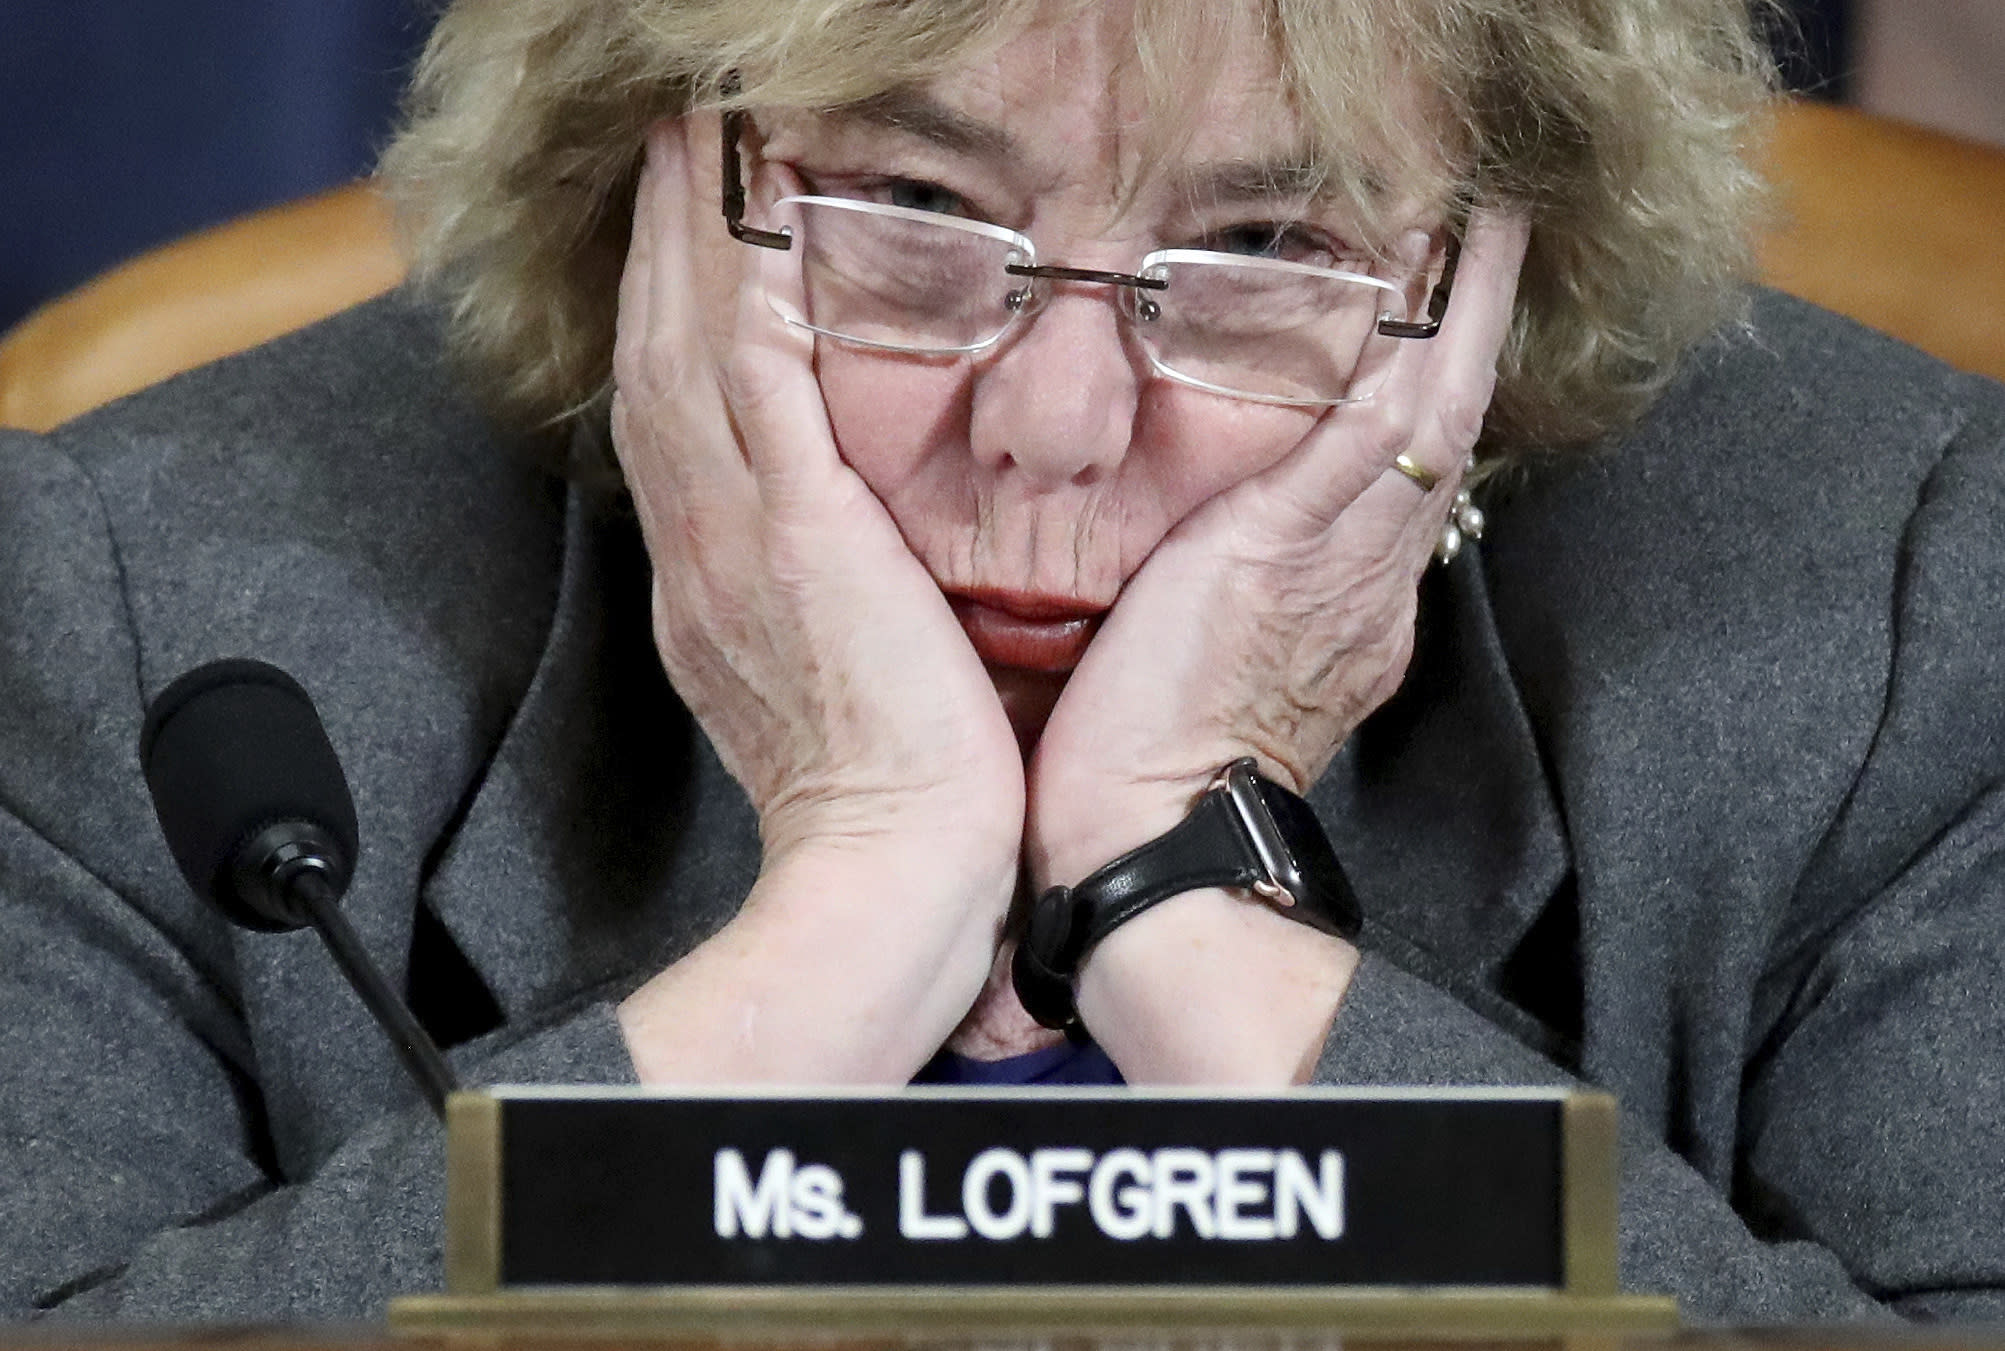 Rep. Zoe Lofgren, D-Caif., listens as constitutional scholars testify before the House Judiciary Committee in the Longworth House Office Building on Capitol Hill December 4, 2019 in Washington. (Drew Angerer/Pool via AP)